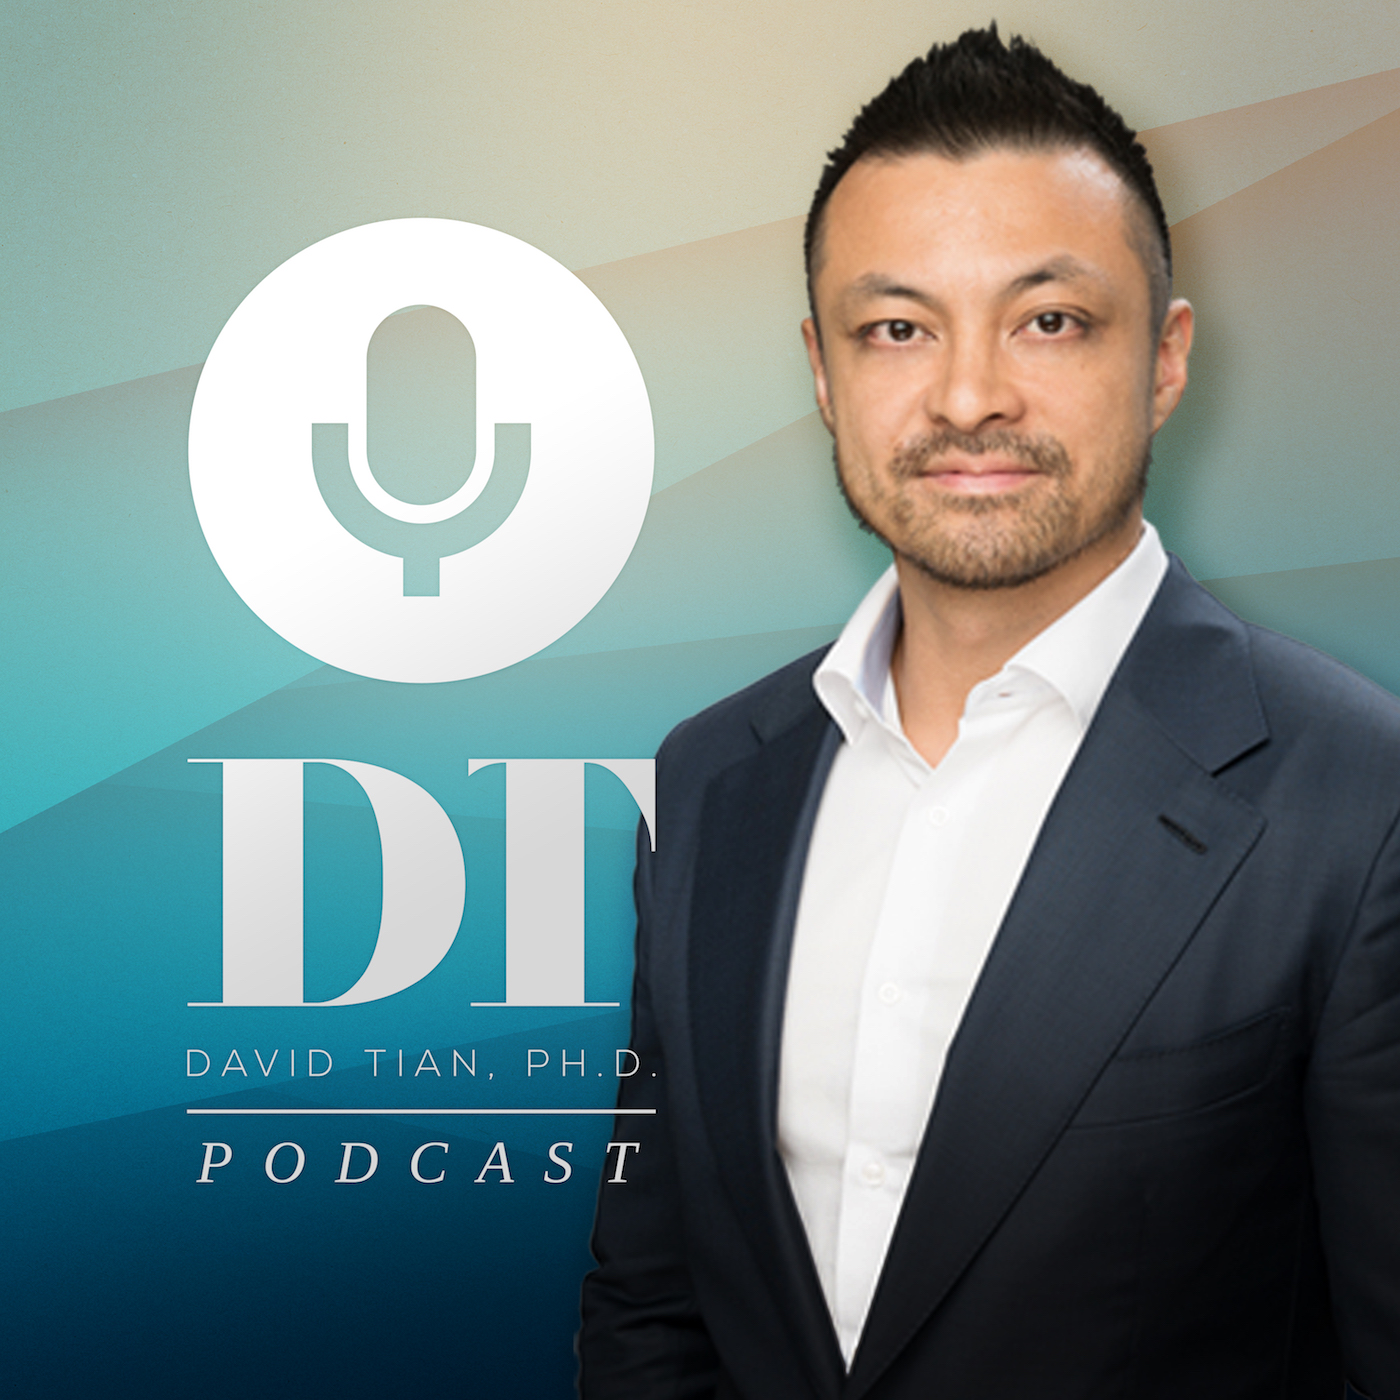 The DTPHD Podcast by David Tian, Ph.D. show art